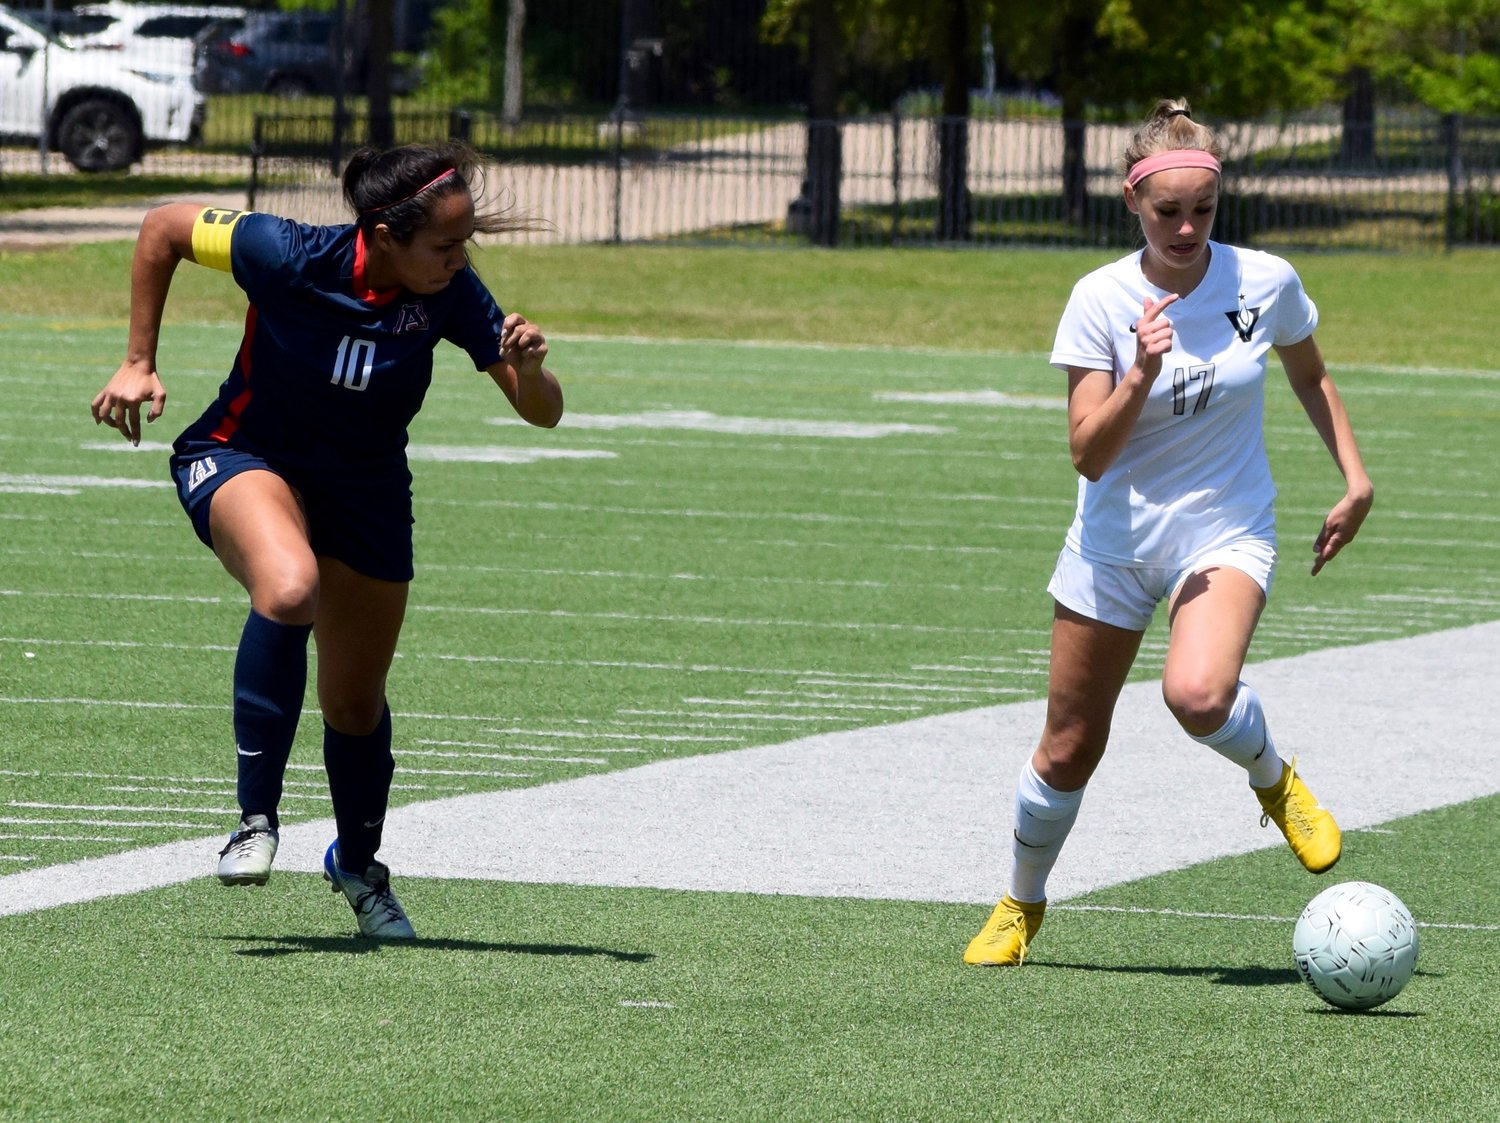 Lexi Spinetta and Vandegrift lost to Allen 1-0 in the regional quarterfinals Friday afternoon at Kelly Reeves Athletic Complex.